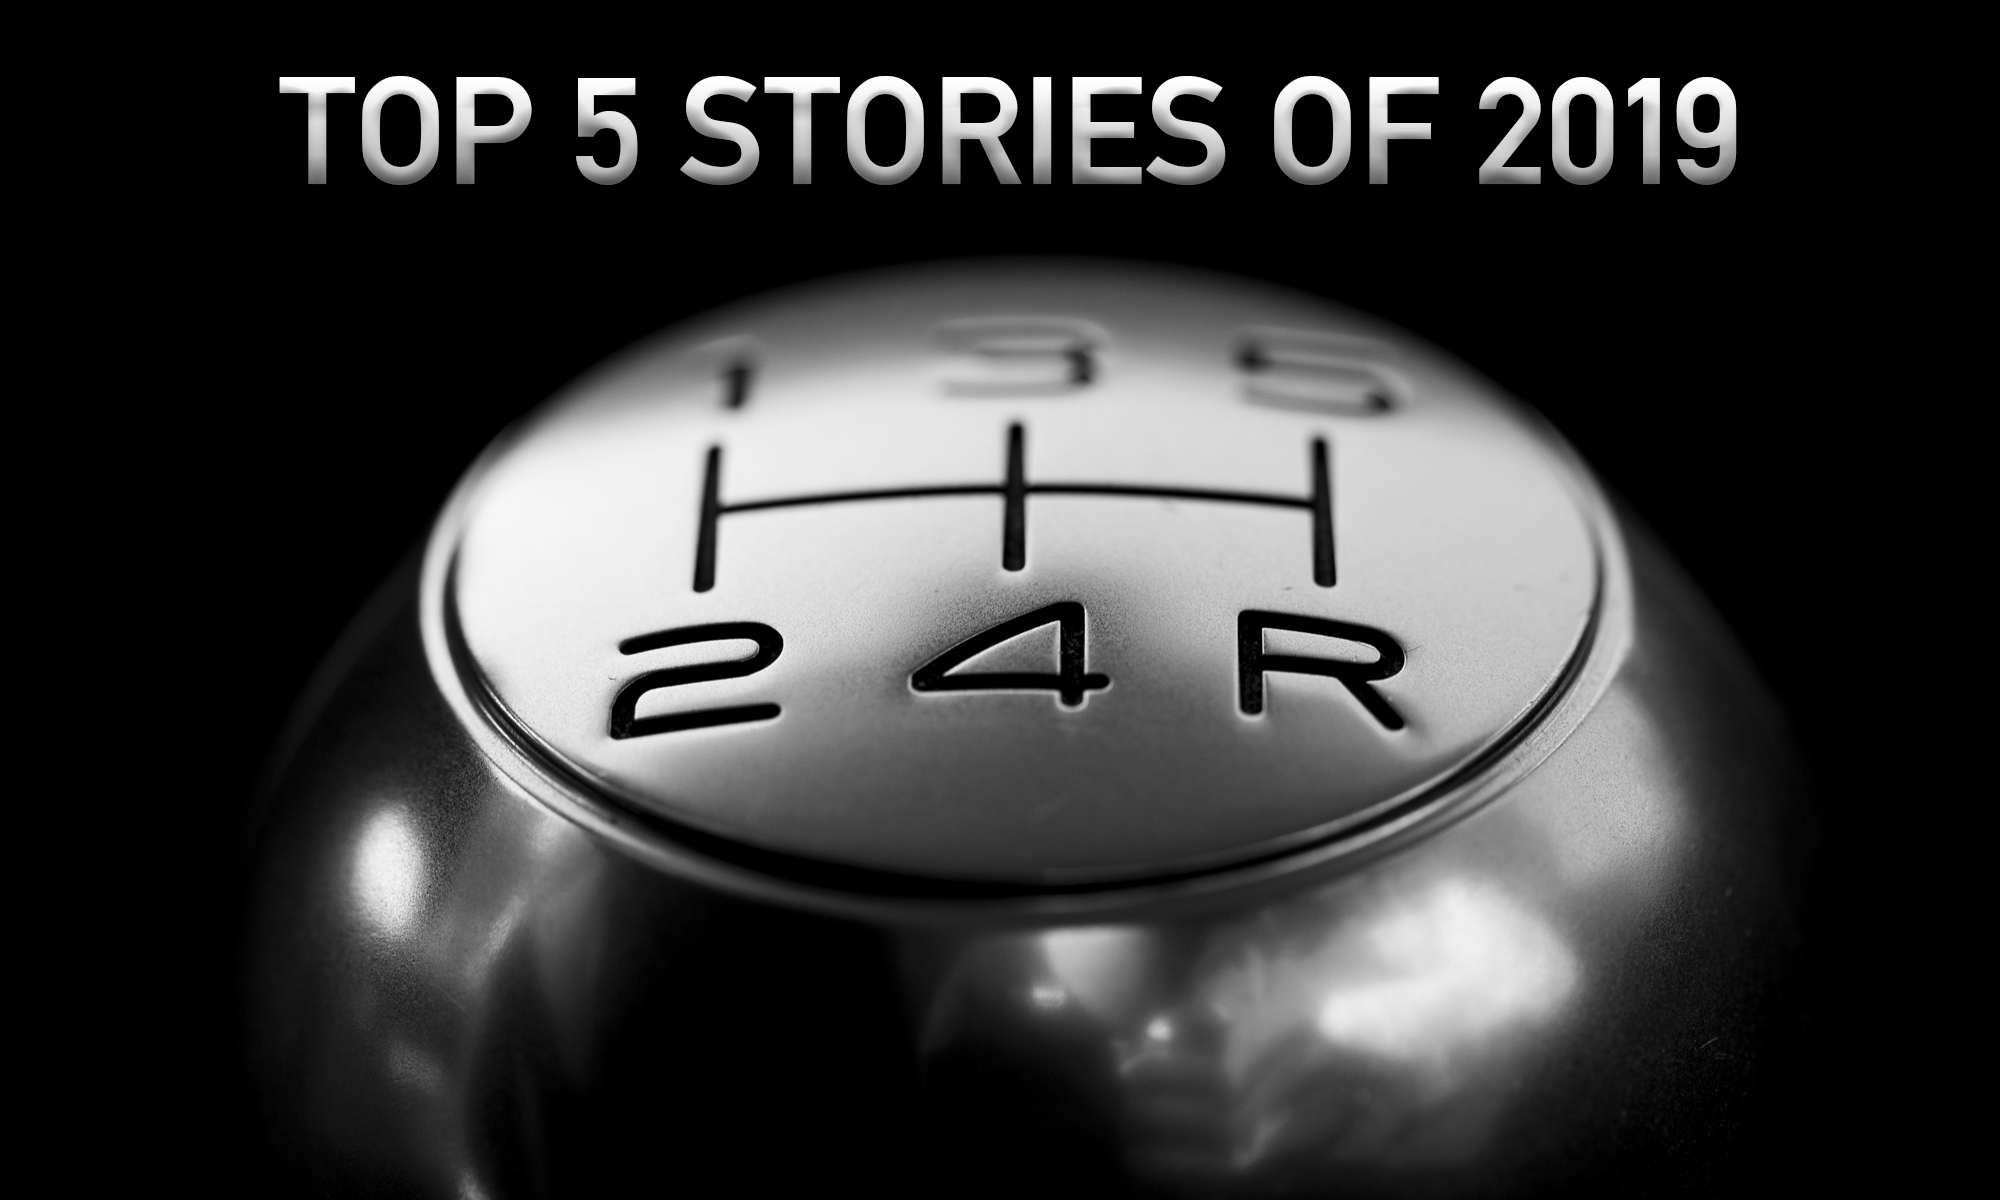 Top 5 Stories of 2019